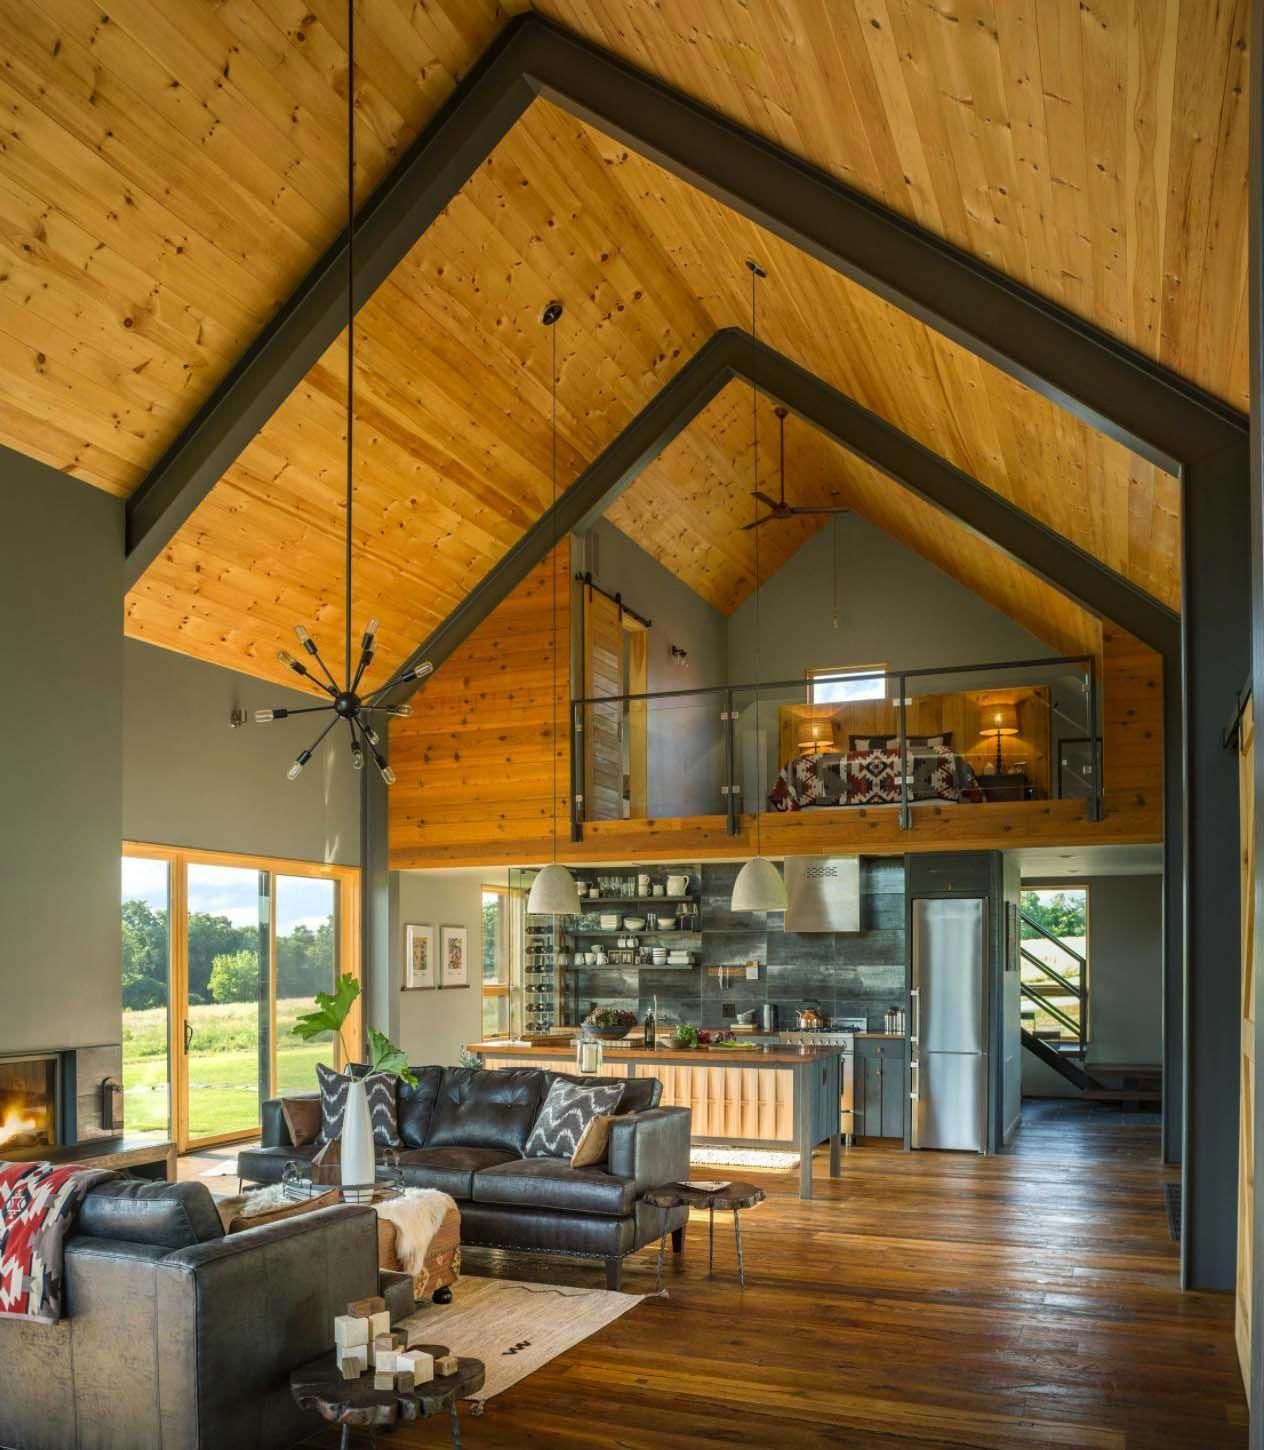 Small and cozy modern barn house away in Vermont